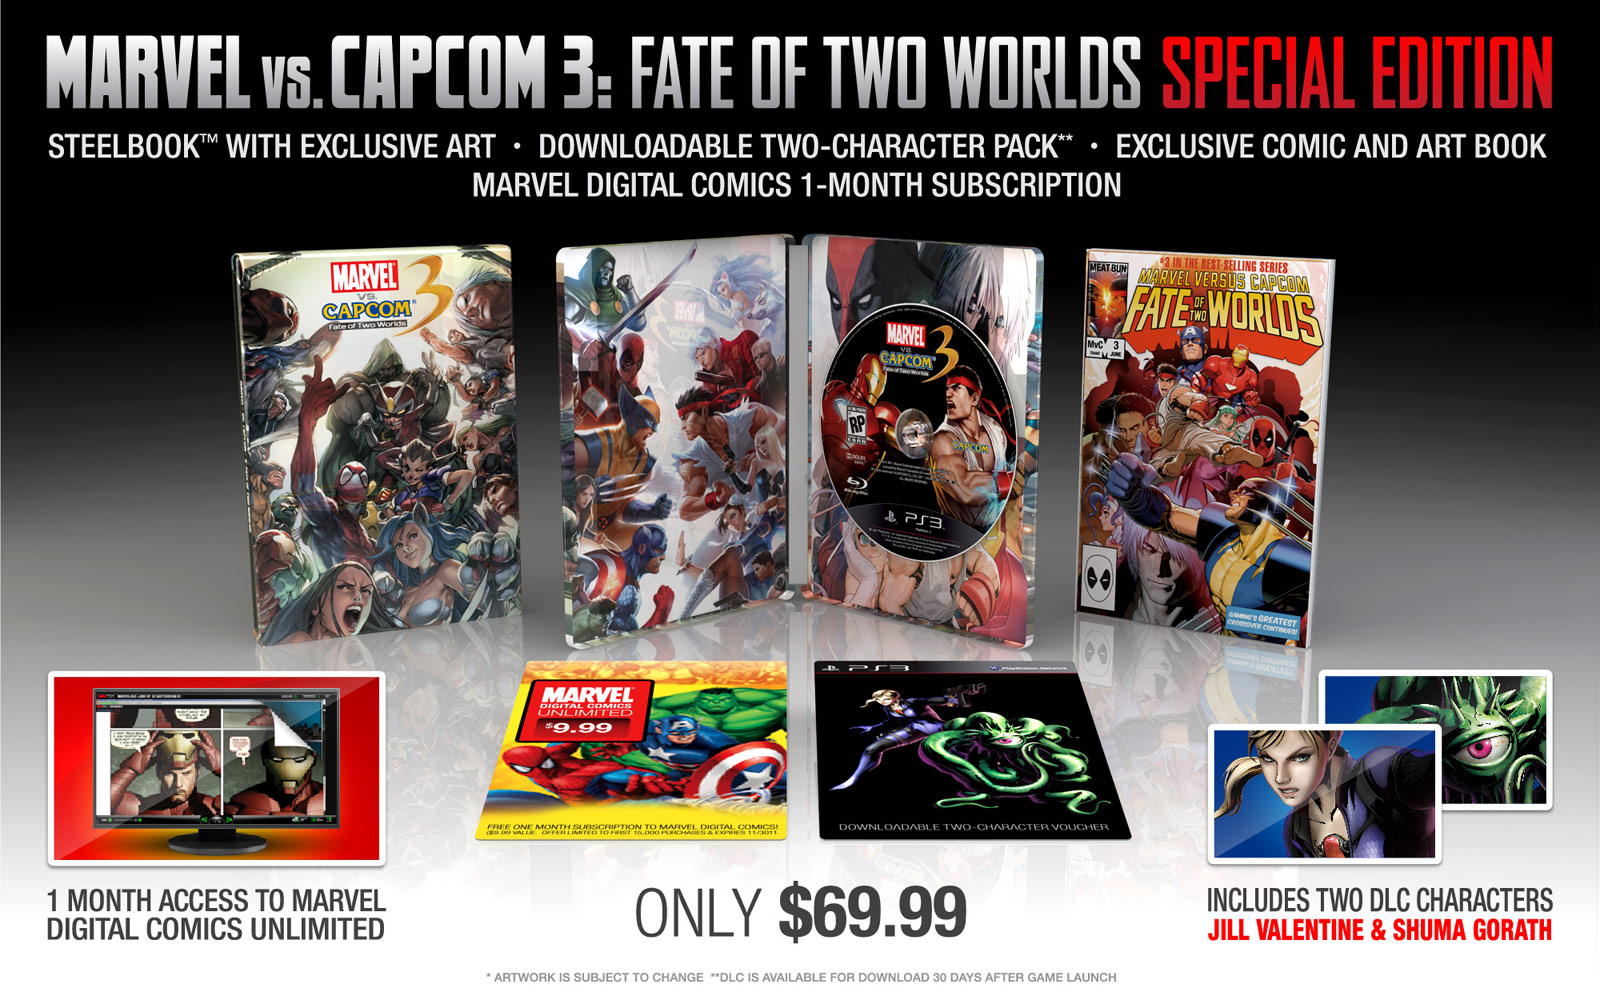 Collector's Edition image for Marvel vs. Capcom 3